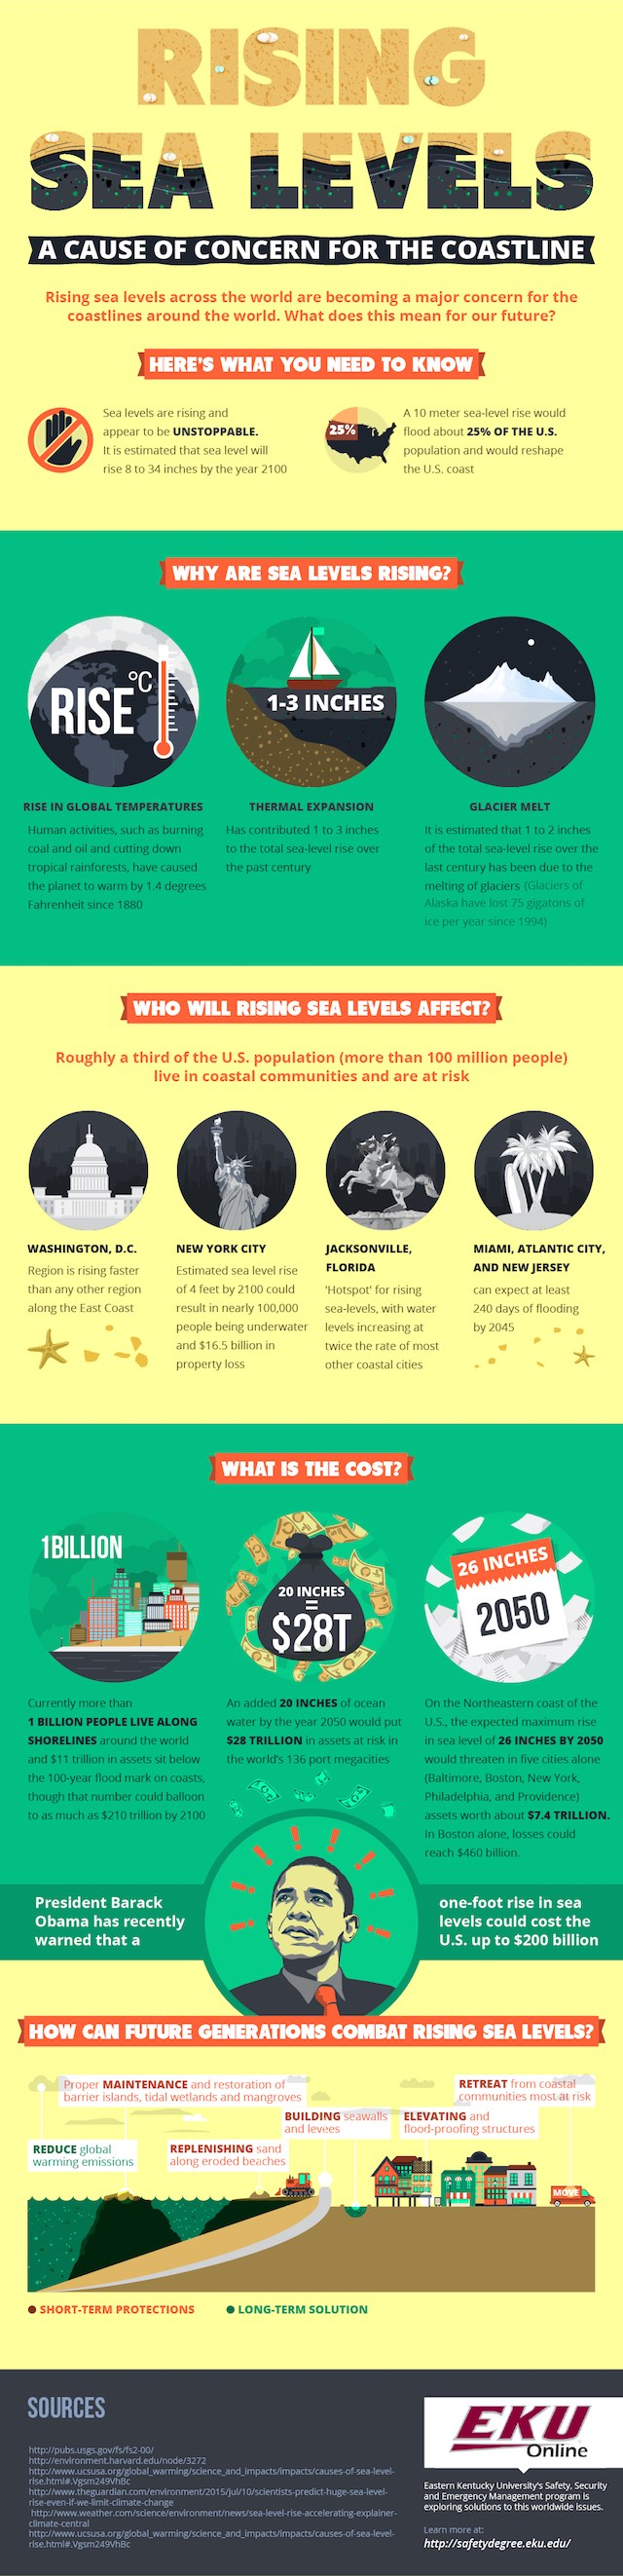 The impacts of rising seas